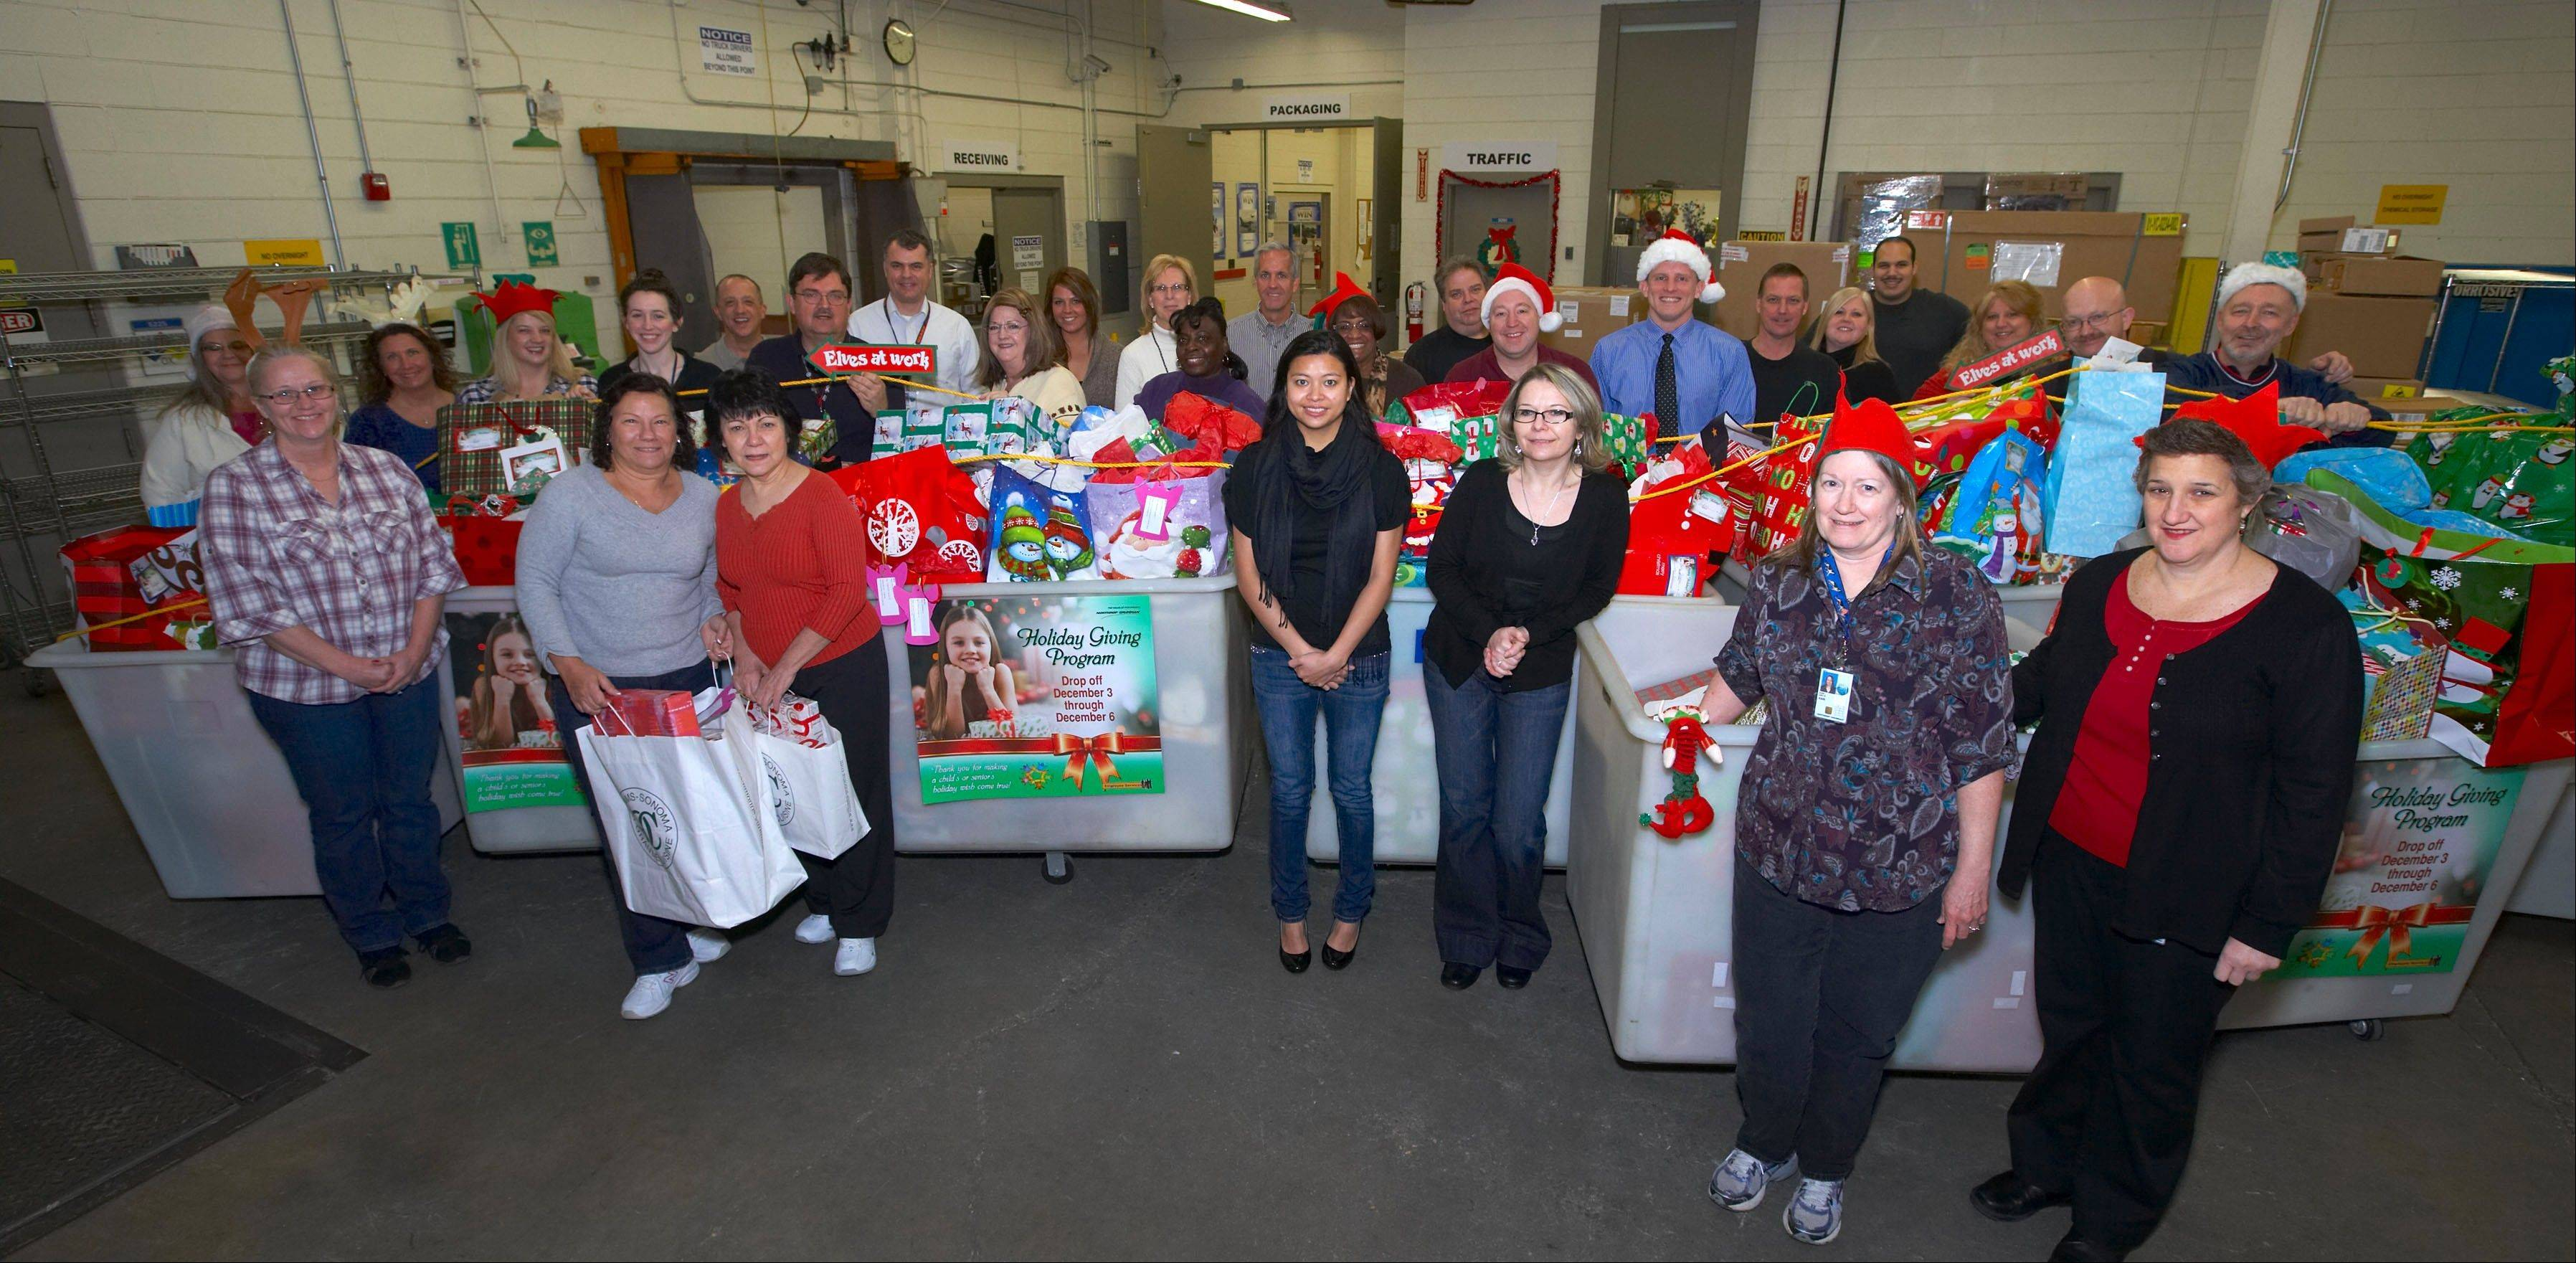 Northrop Grumman employees in Rolling Meadows prepare to deliver gifts to 220 Chicago-area residents during the campus' 20th annual holiday gift drive.